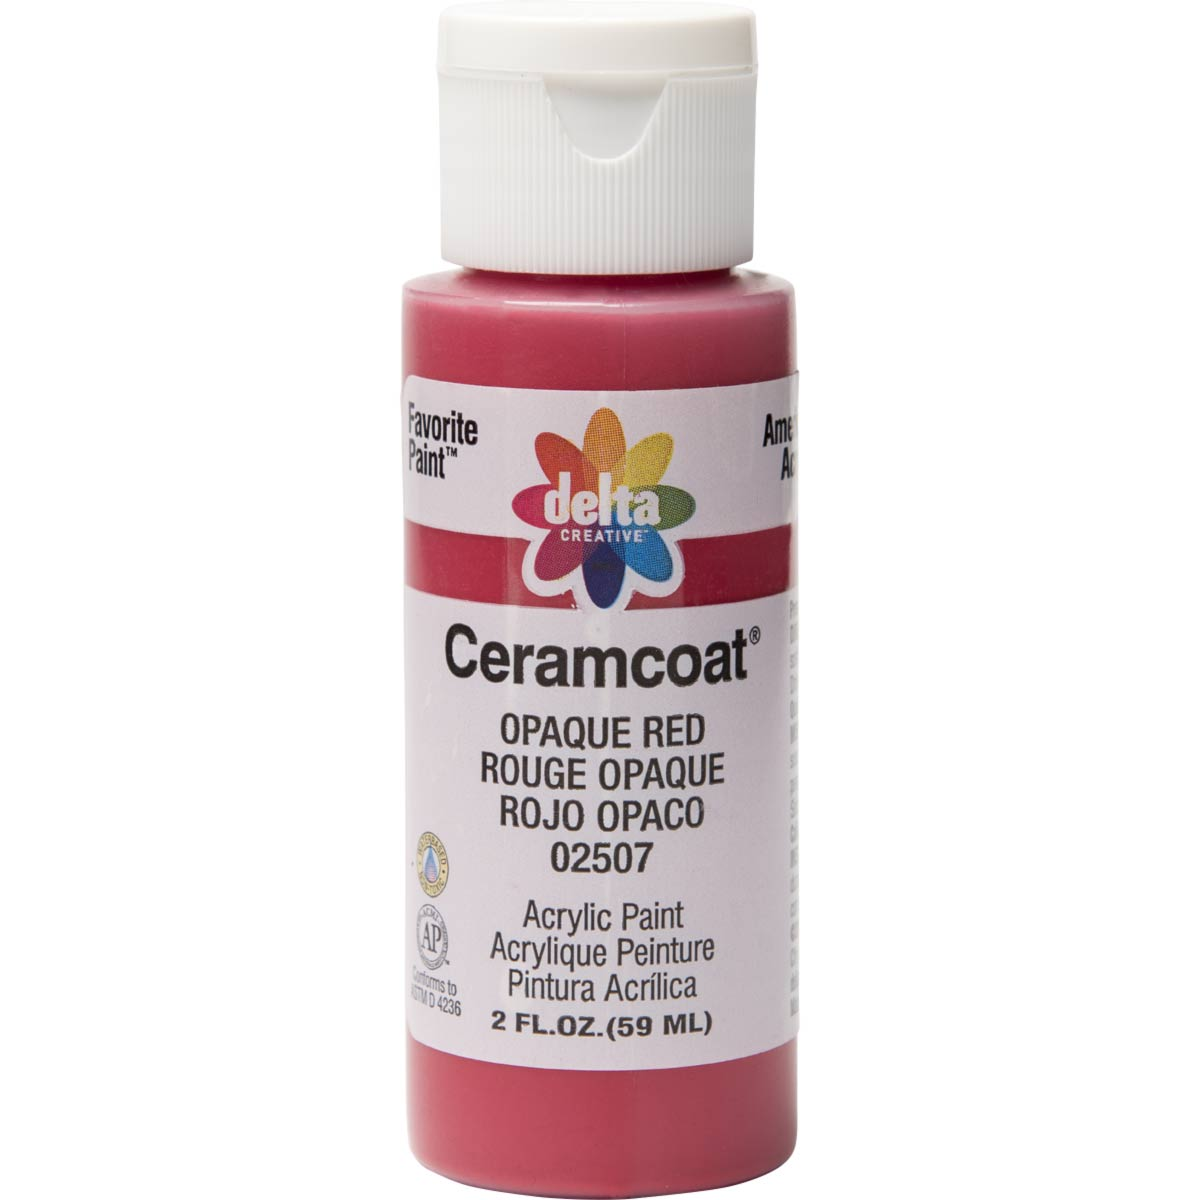 Delta Ceramcoat ® Acrylic Paint - Opaque Red, 2 oz. - 025070202W